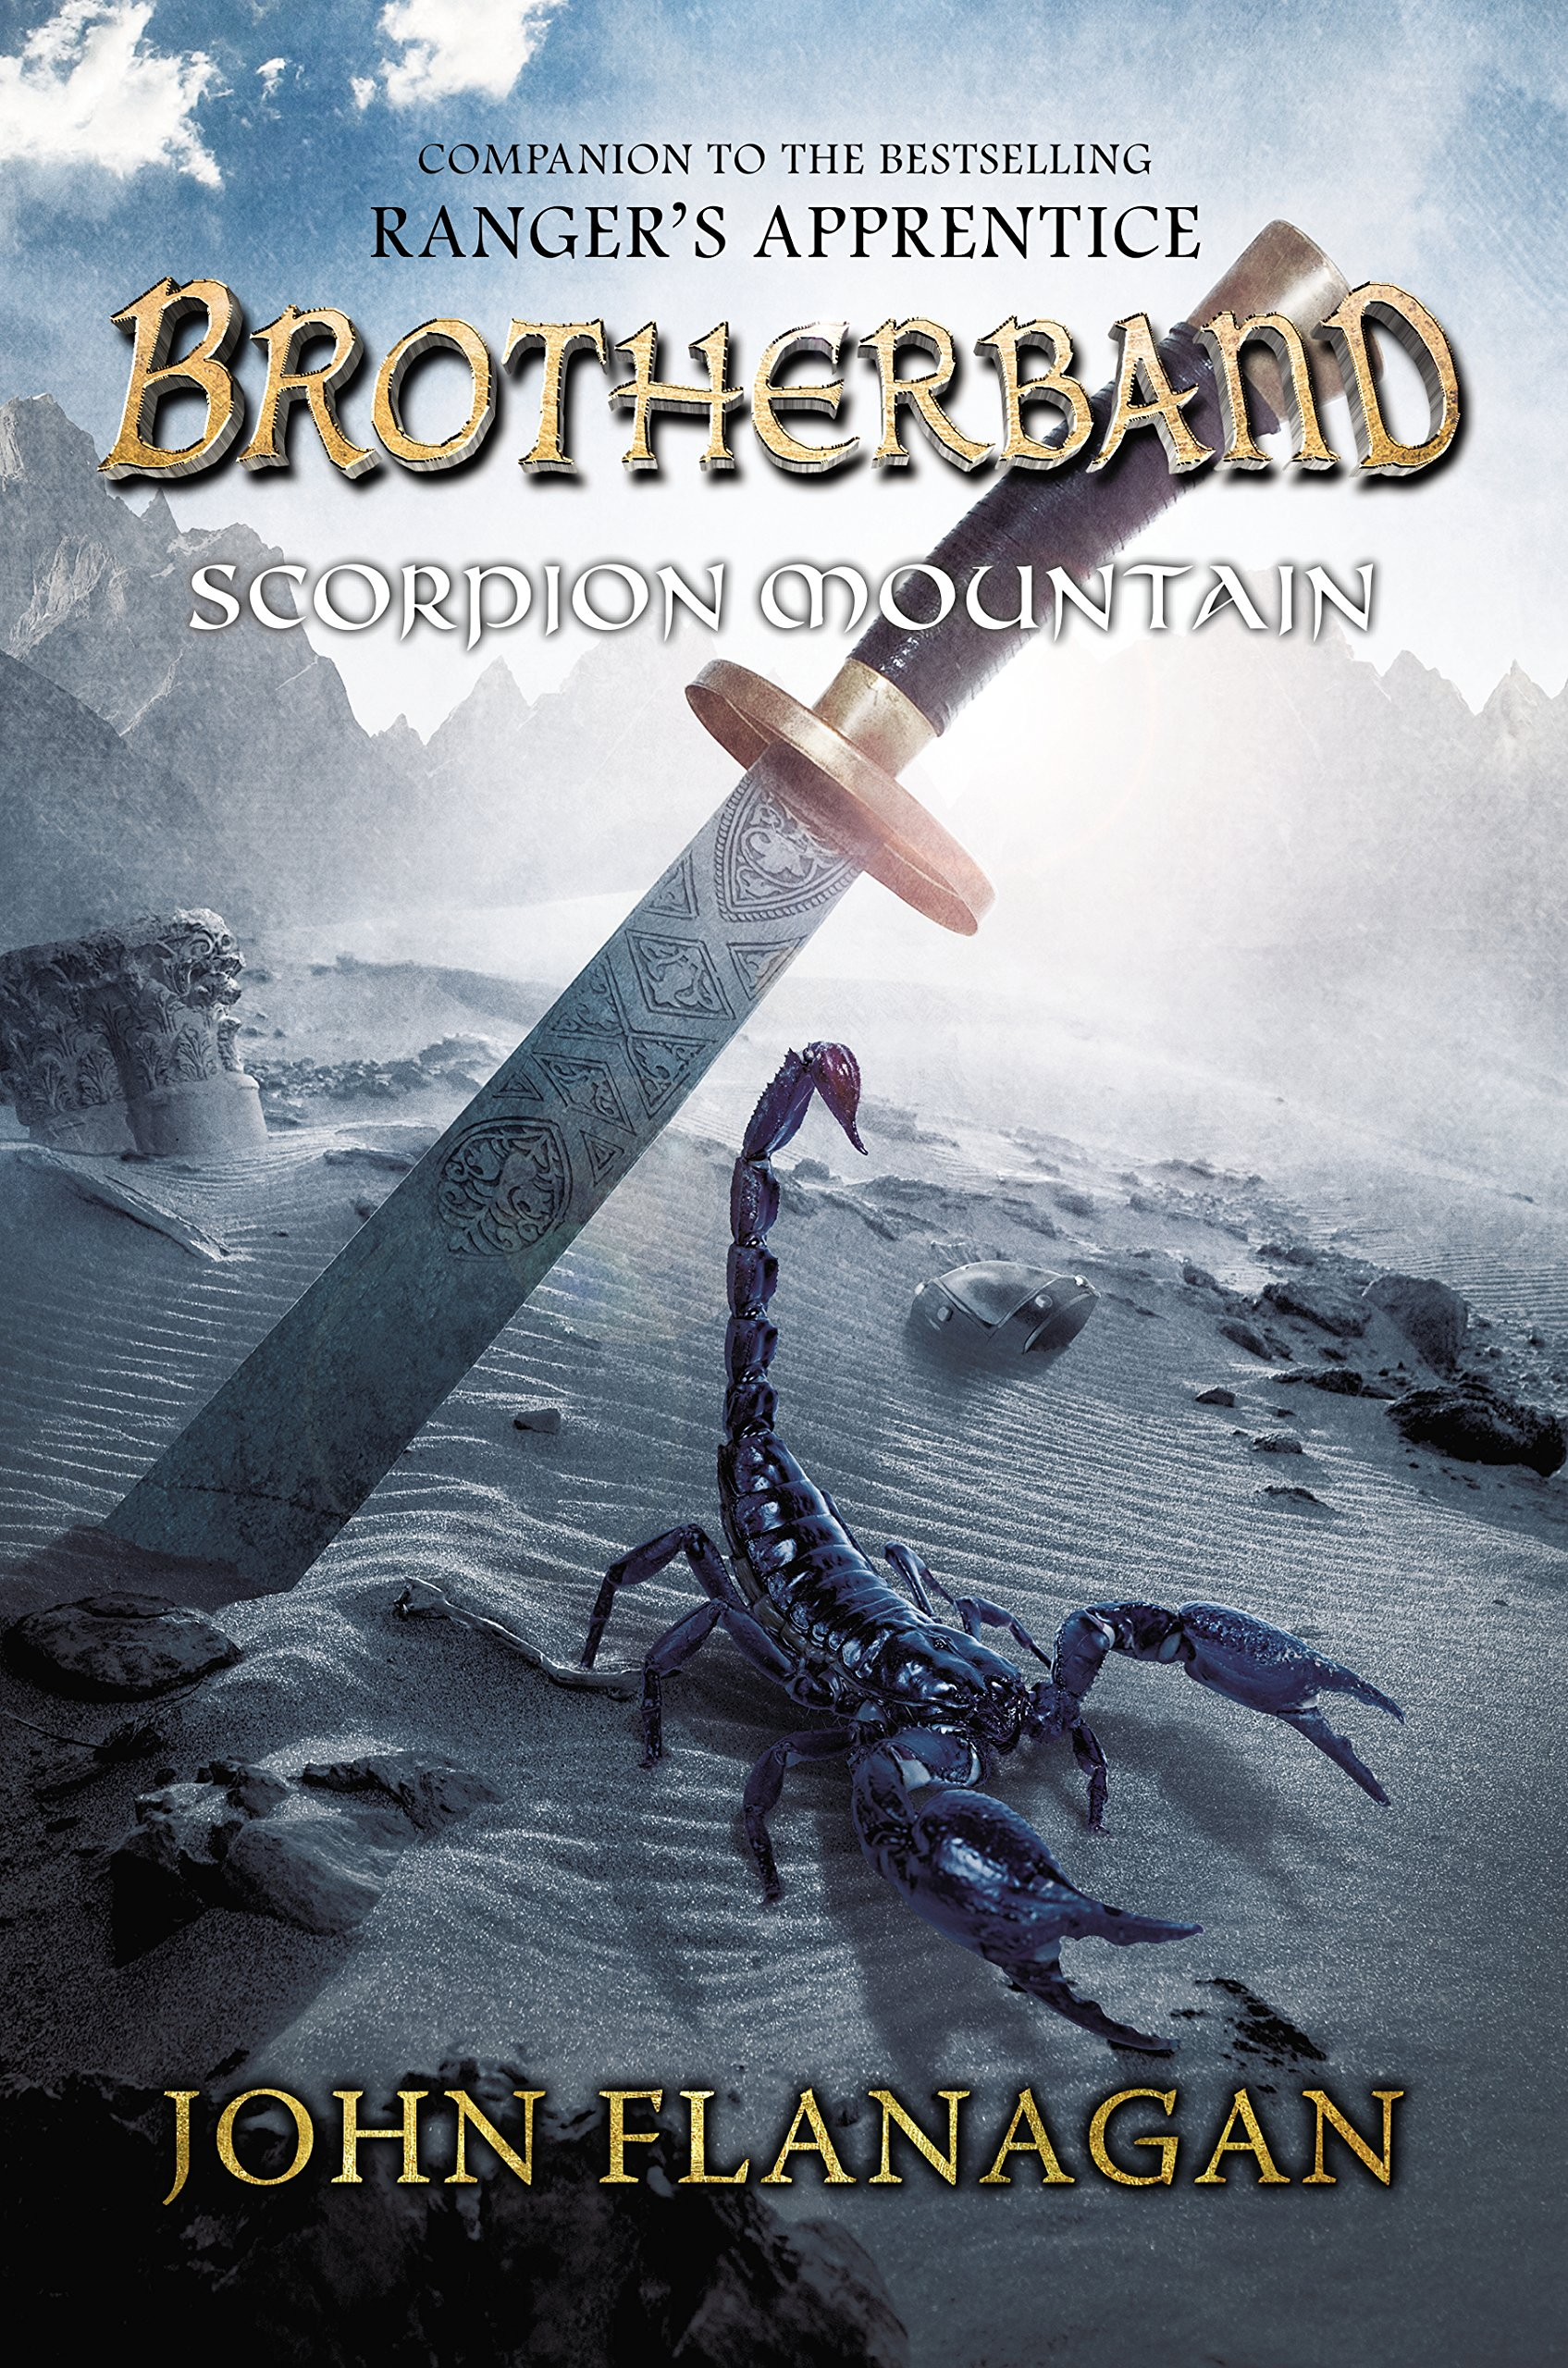 Brotherband Chronicles - Book Series In Order